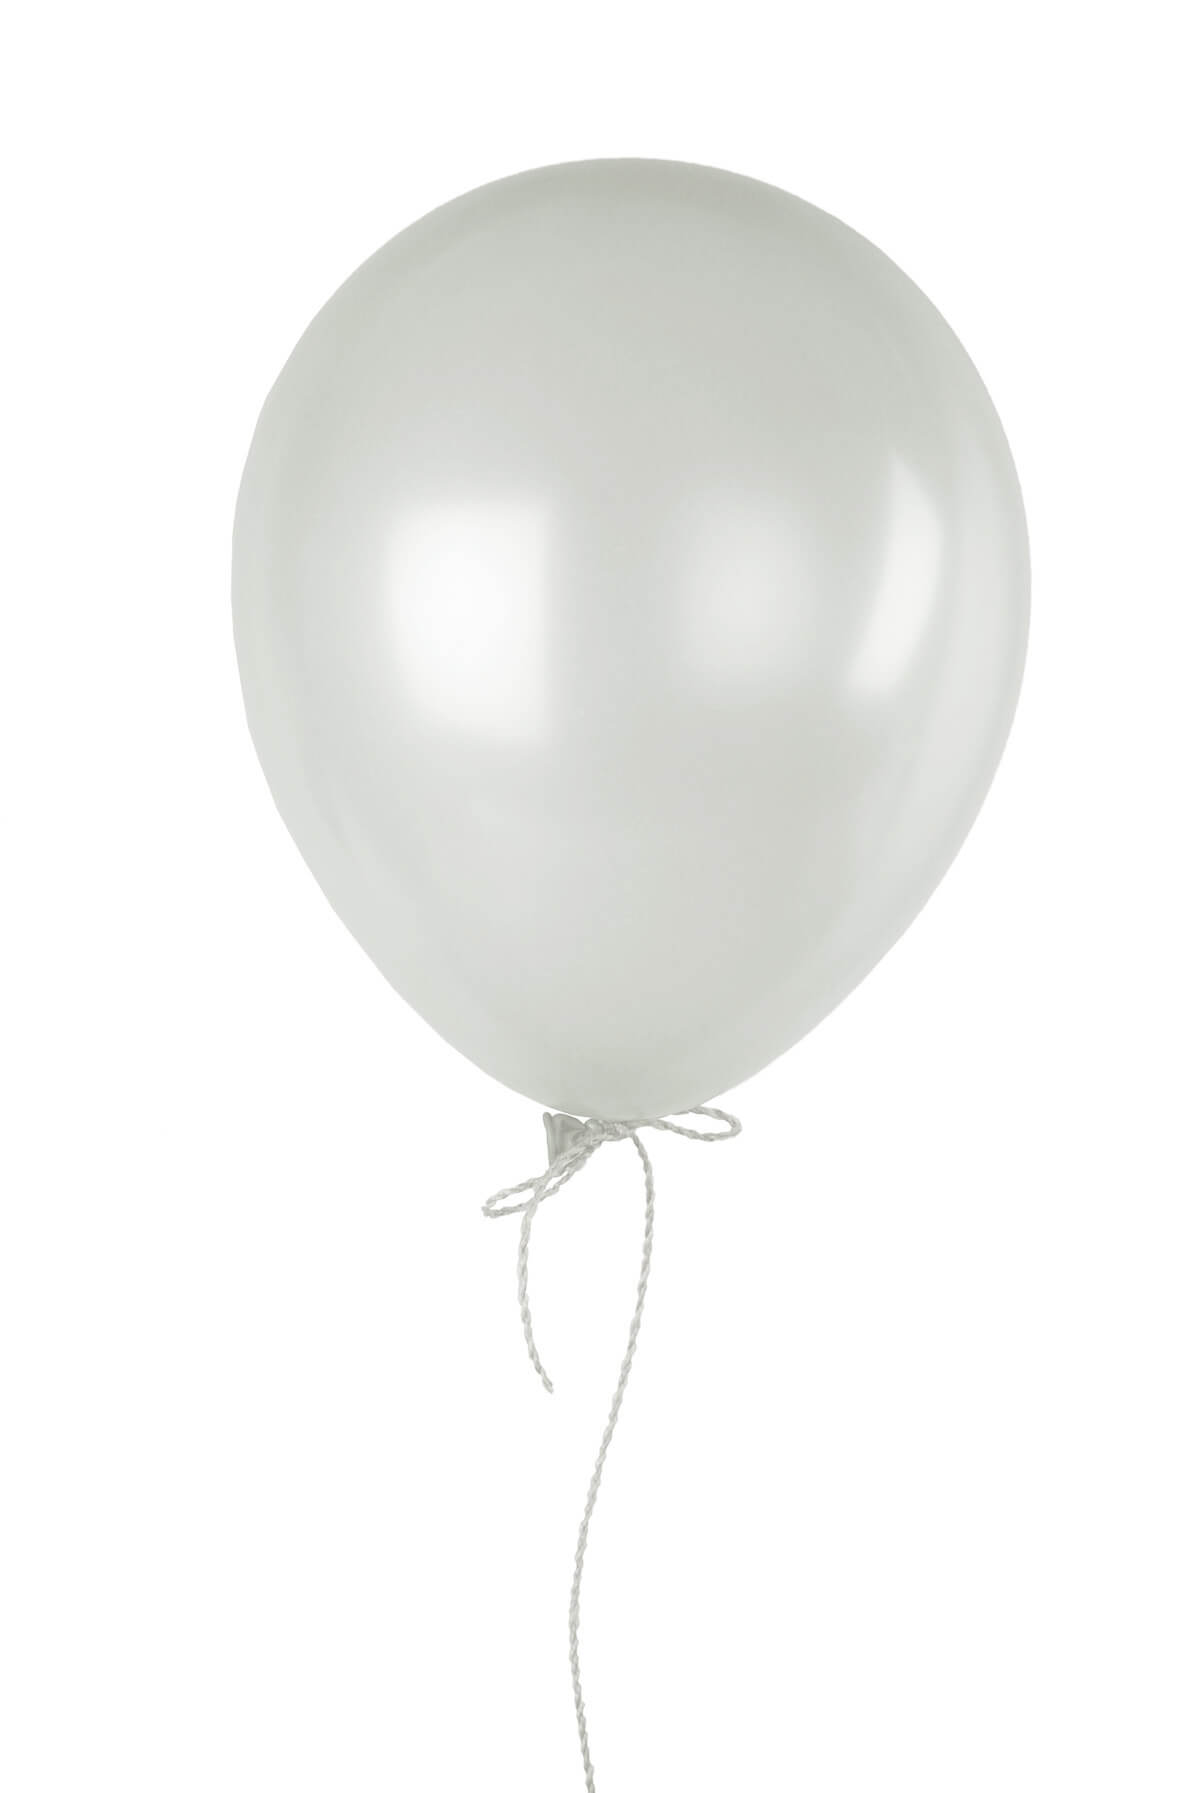 72 White 17 Quot Balloons Crystal Finish Clear